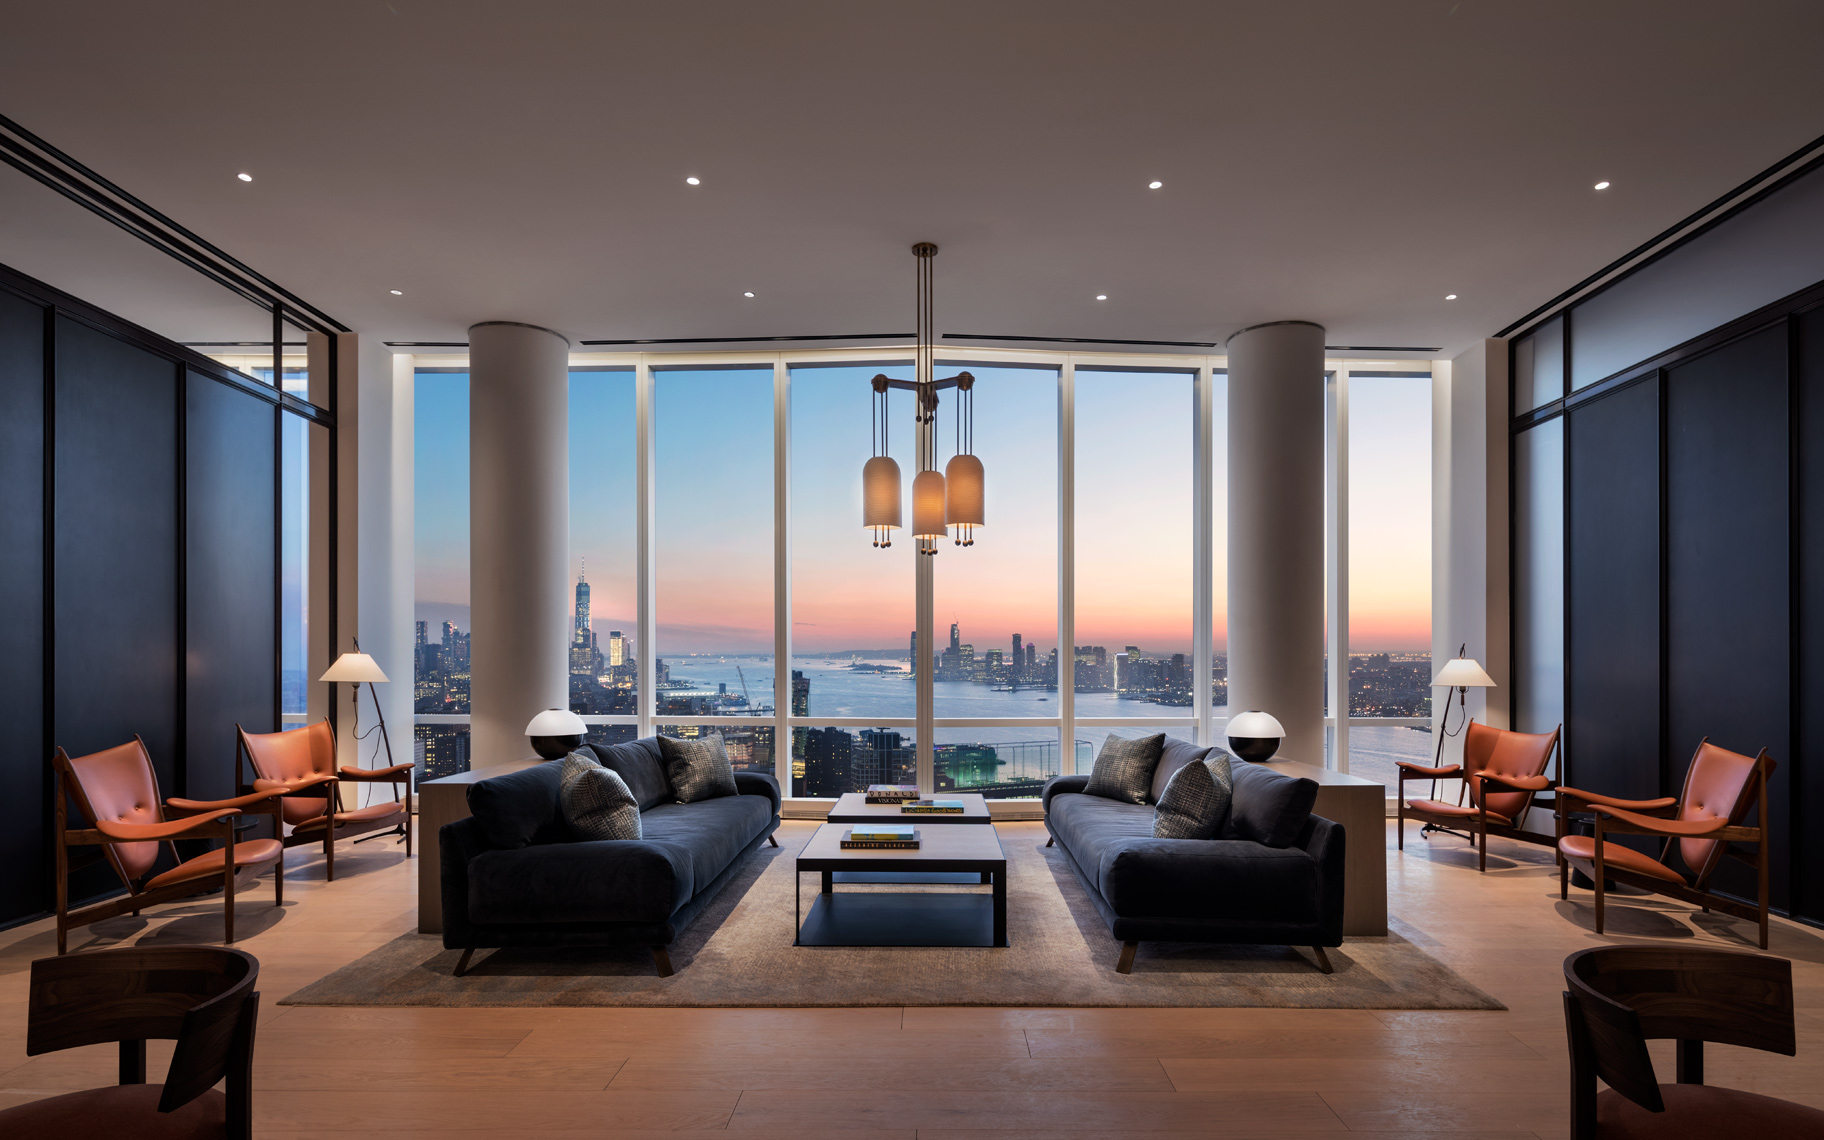 Hudson River Views, Hudson Yards, NYC skyline